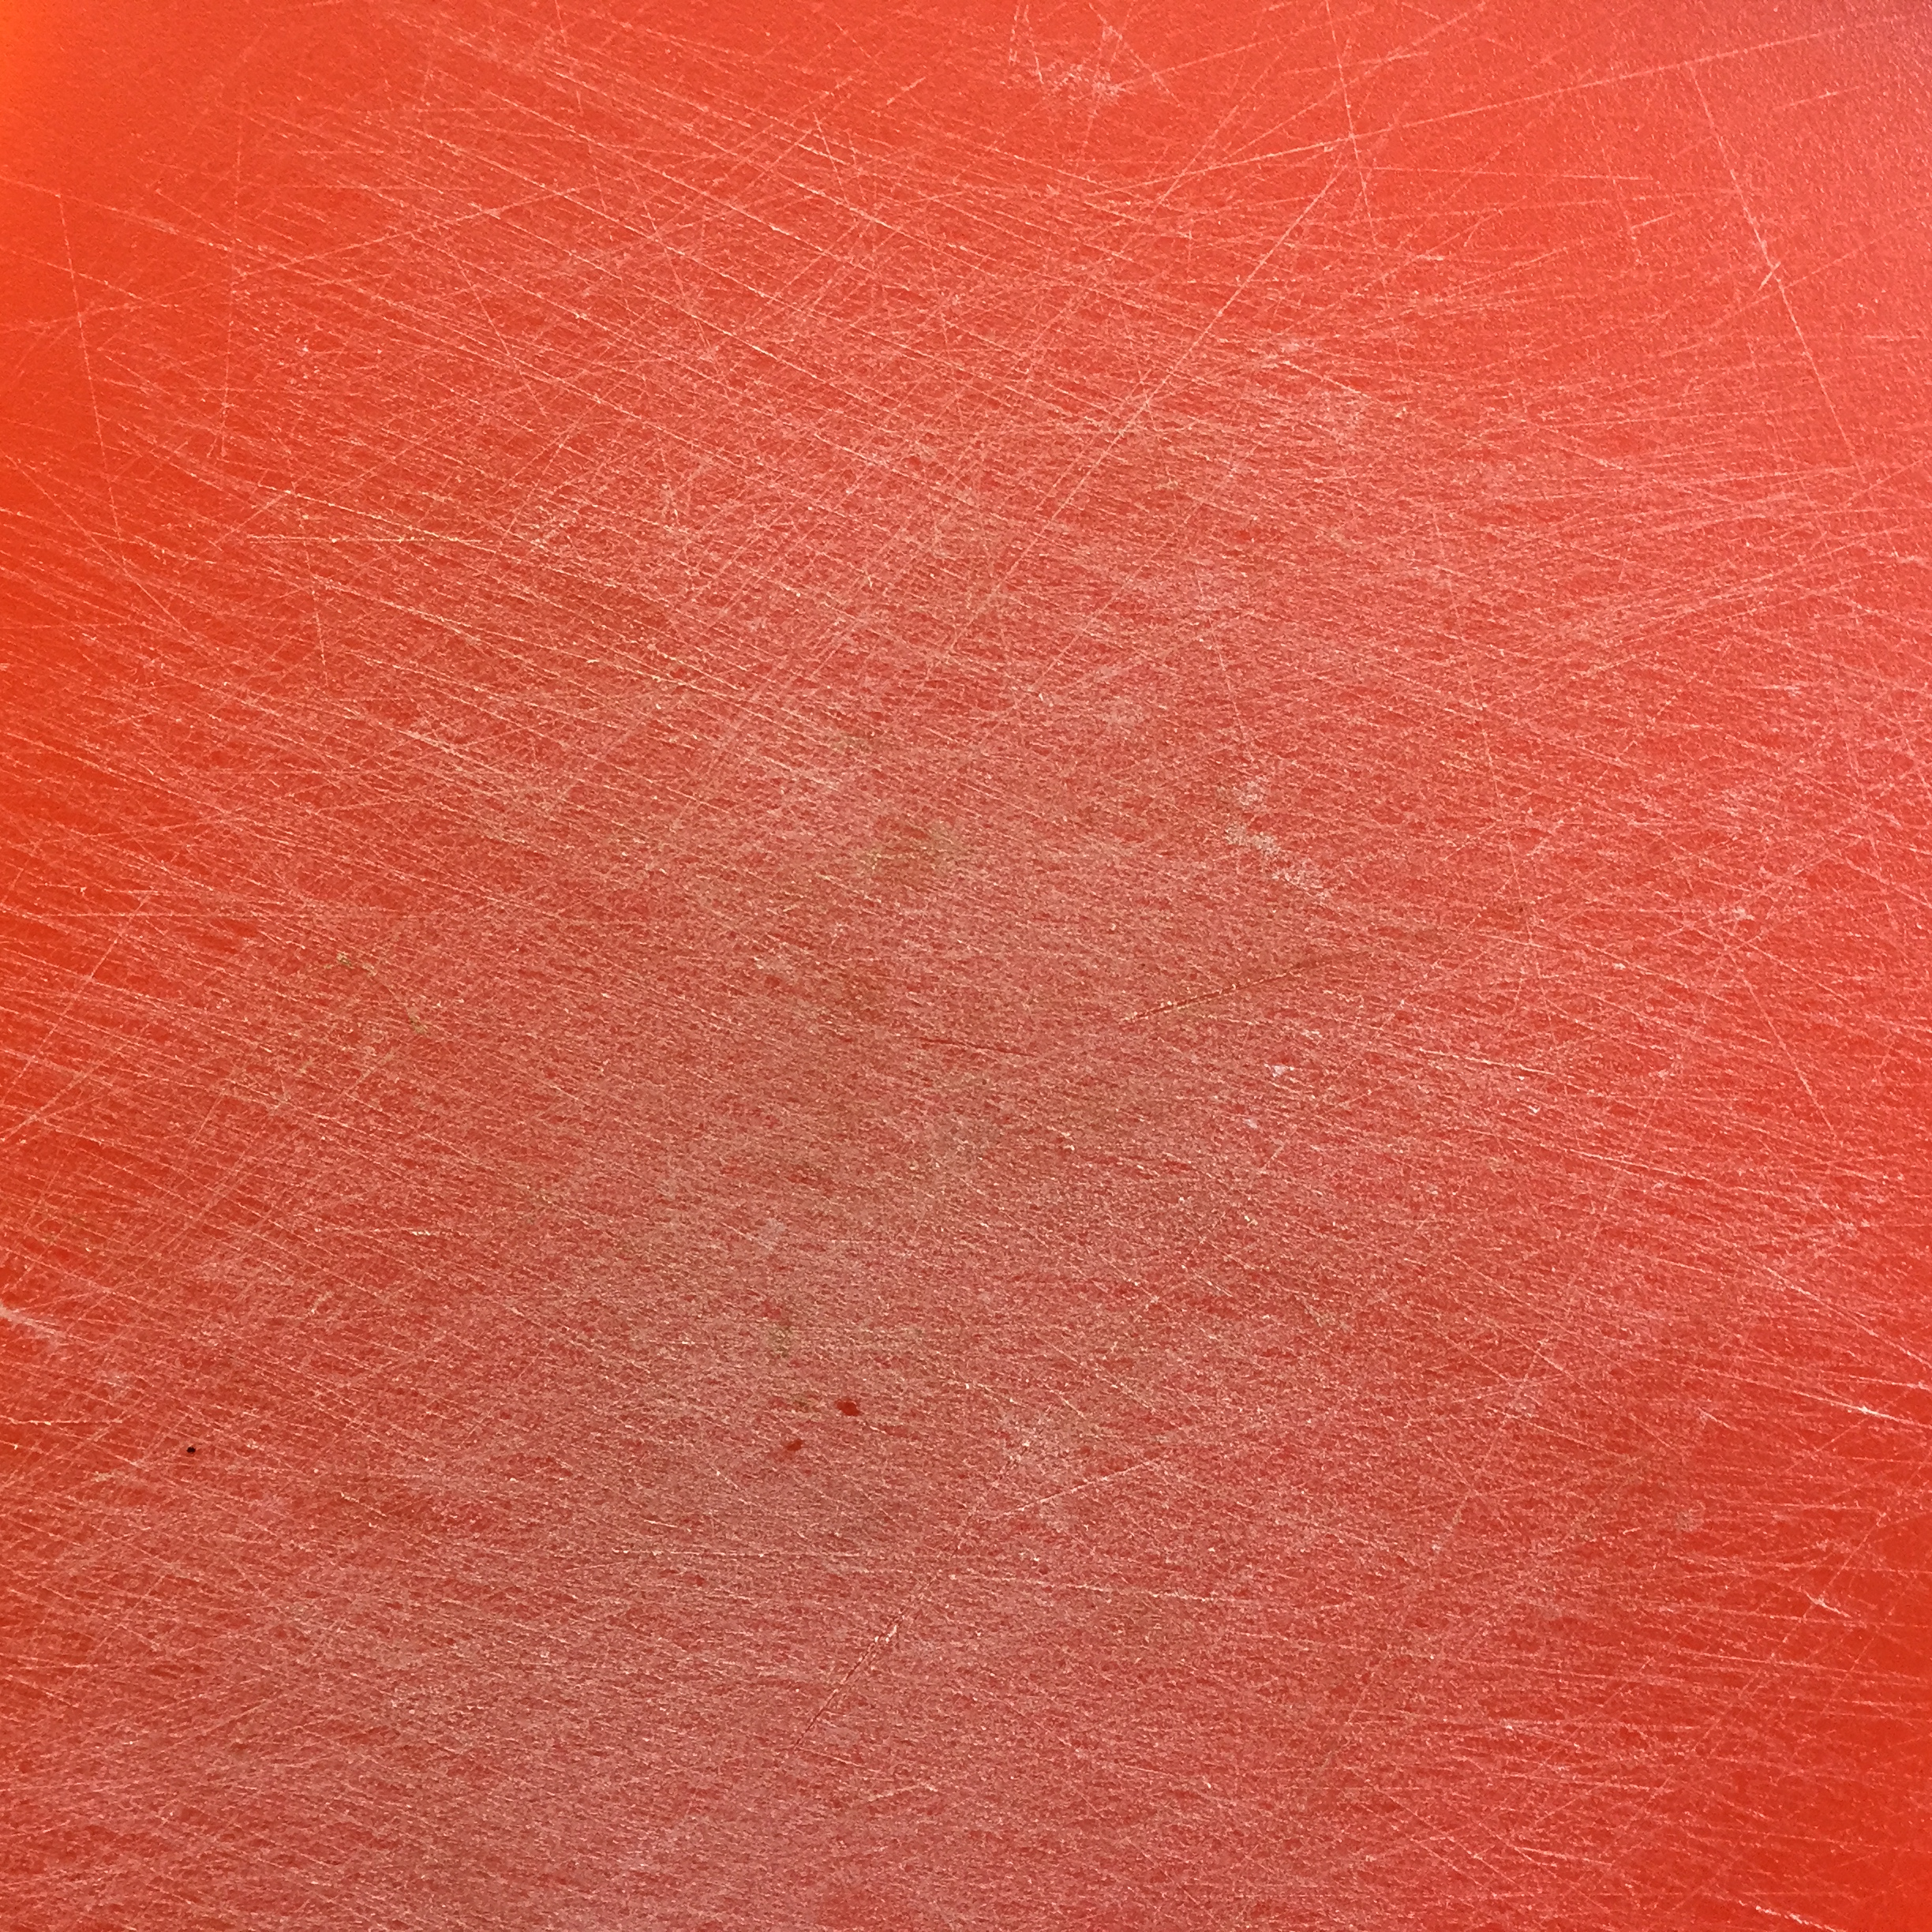 """Scarring"" on a plastic cutting board"